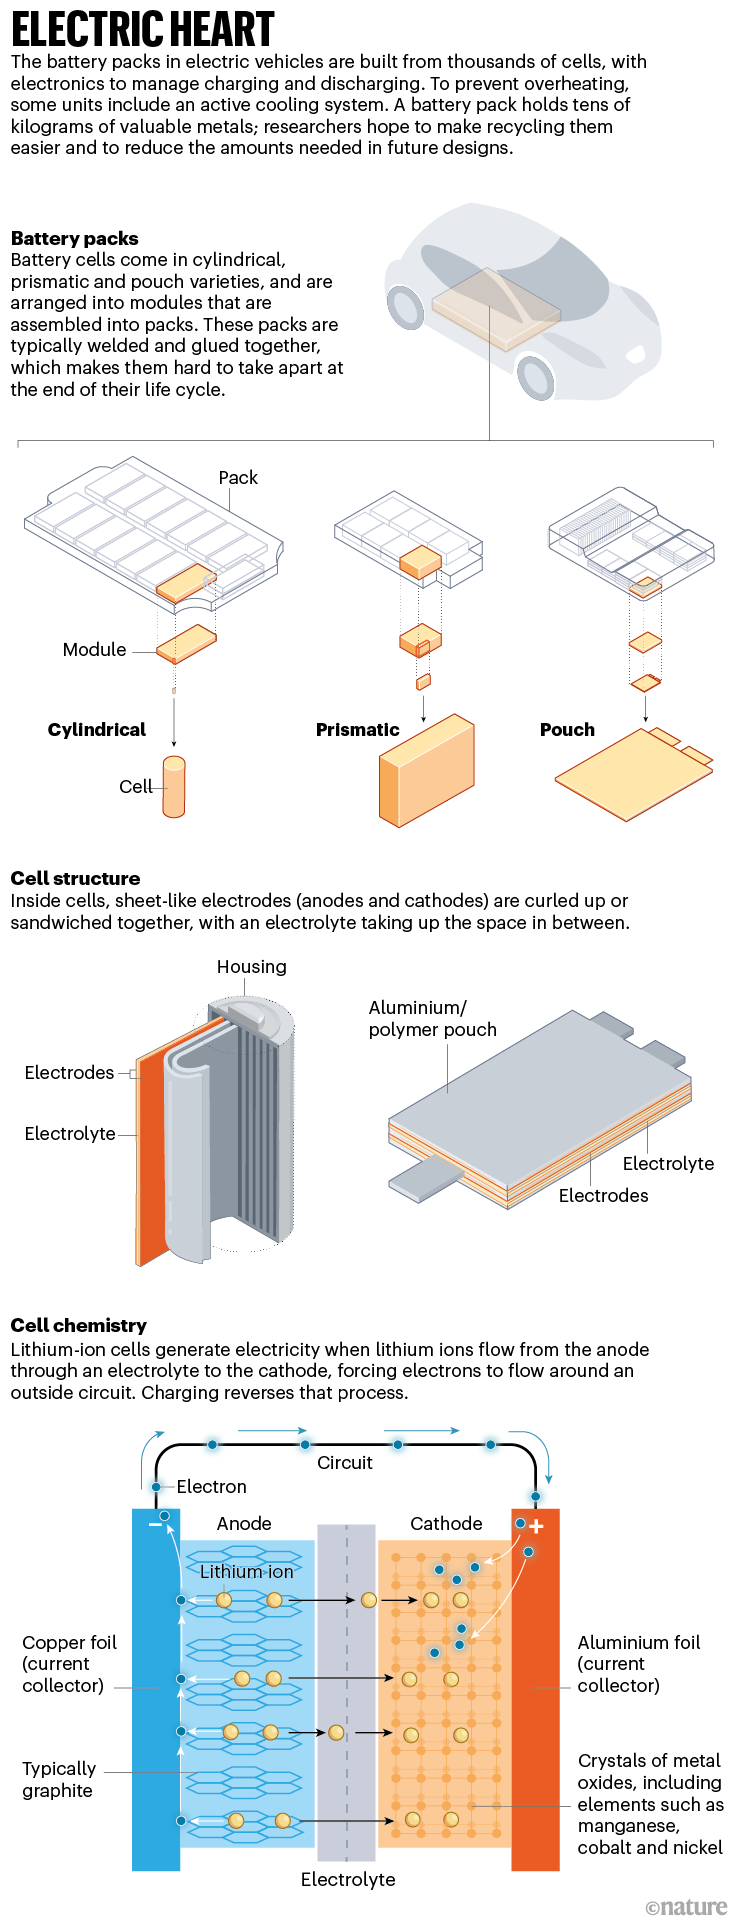 Electric heart: an infographic that shows how battery packs for electric vehicles are arranged, and how the cells operate.